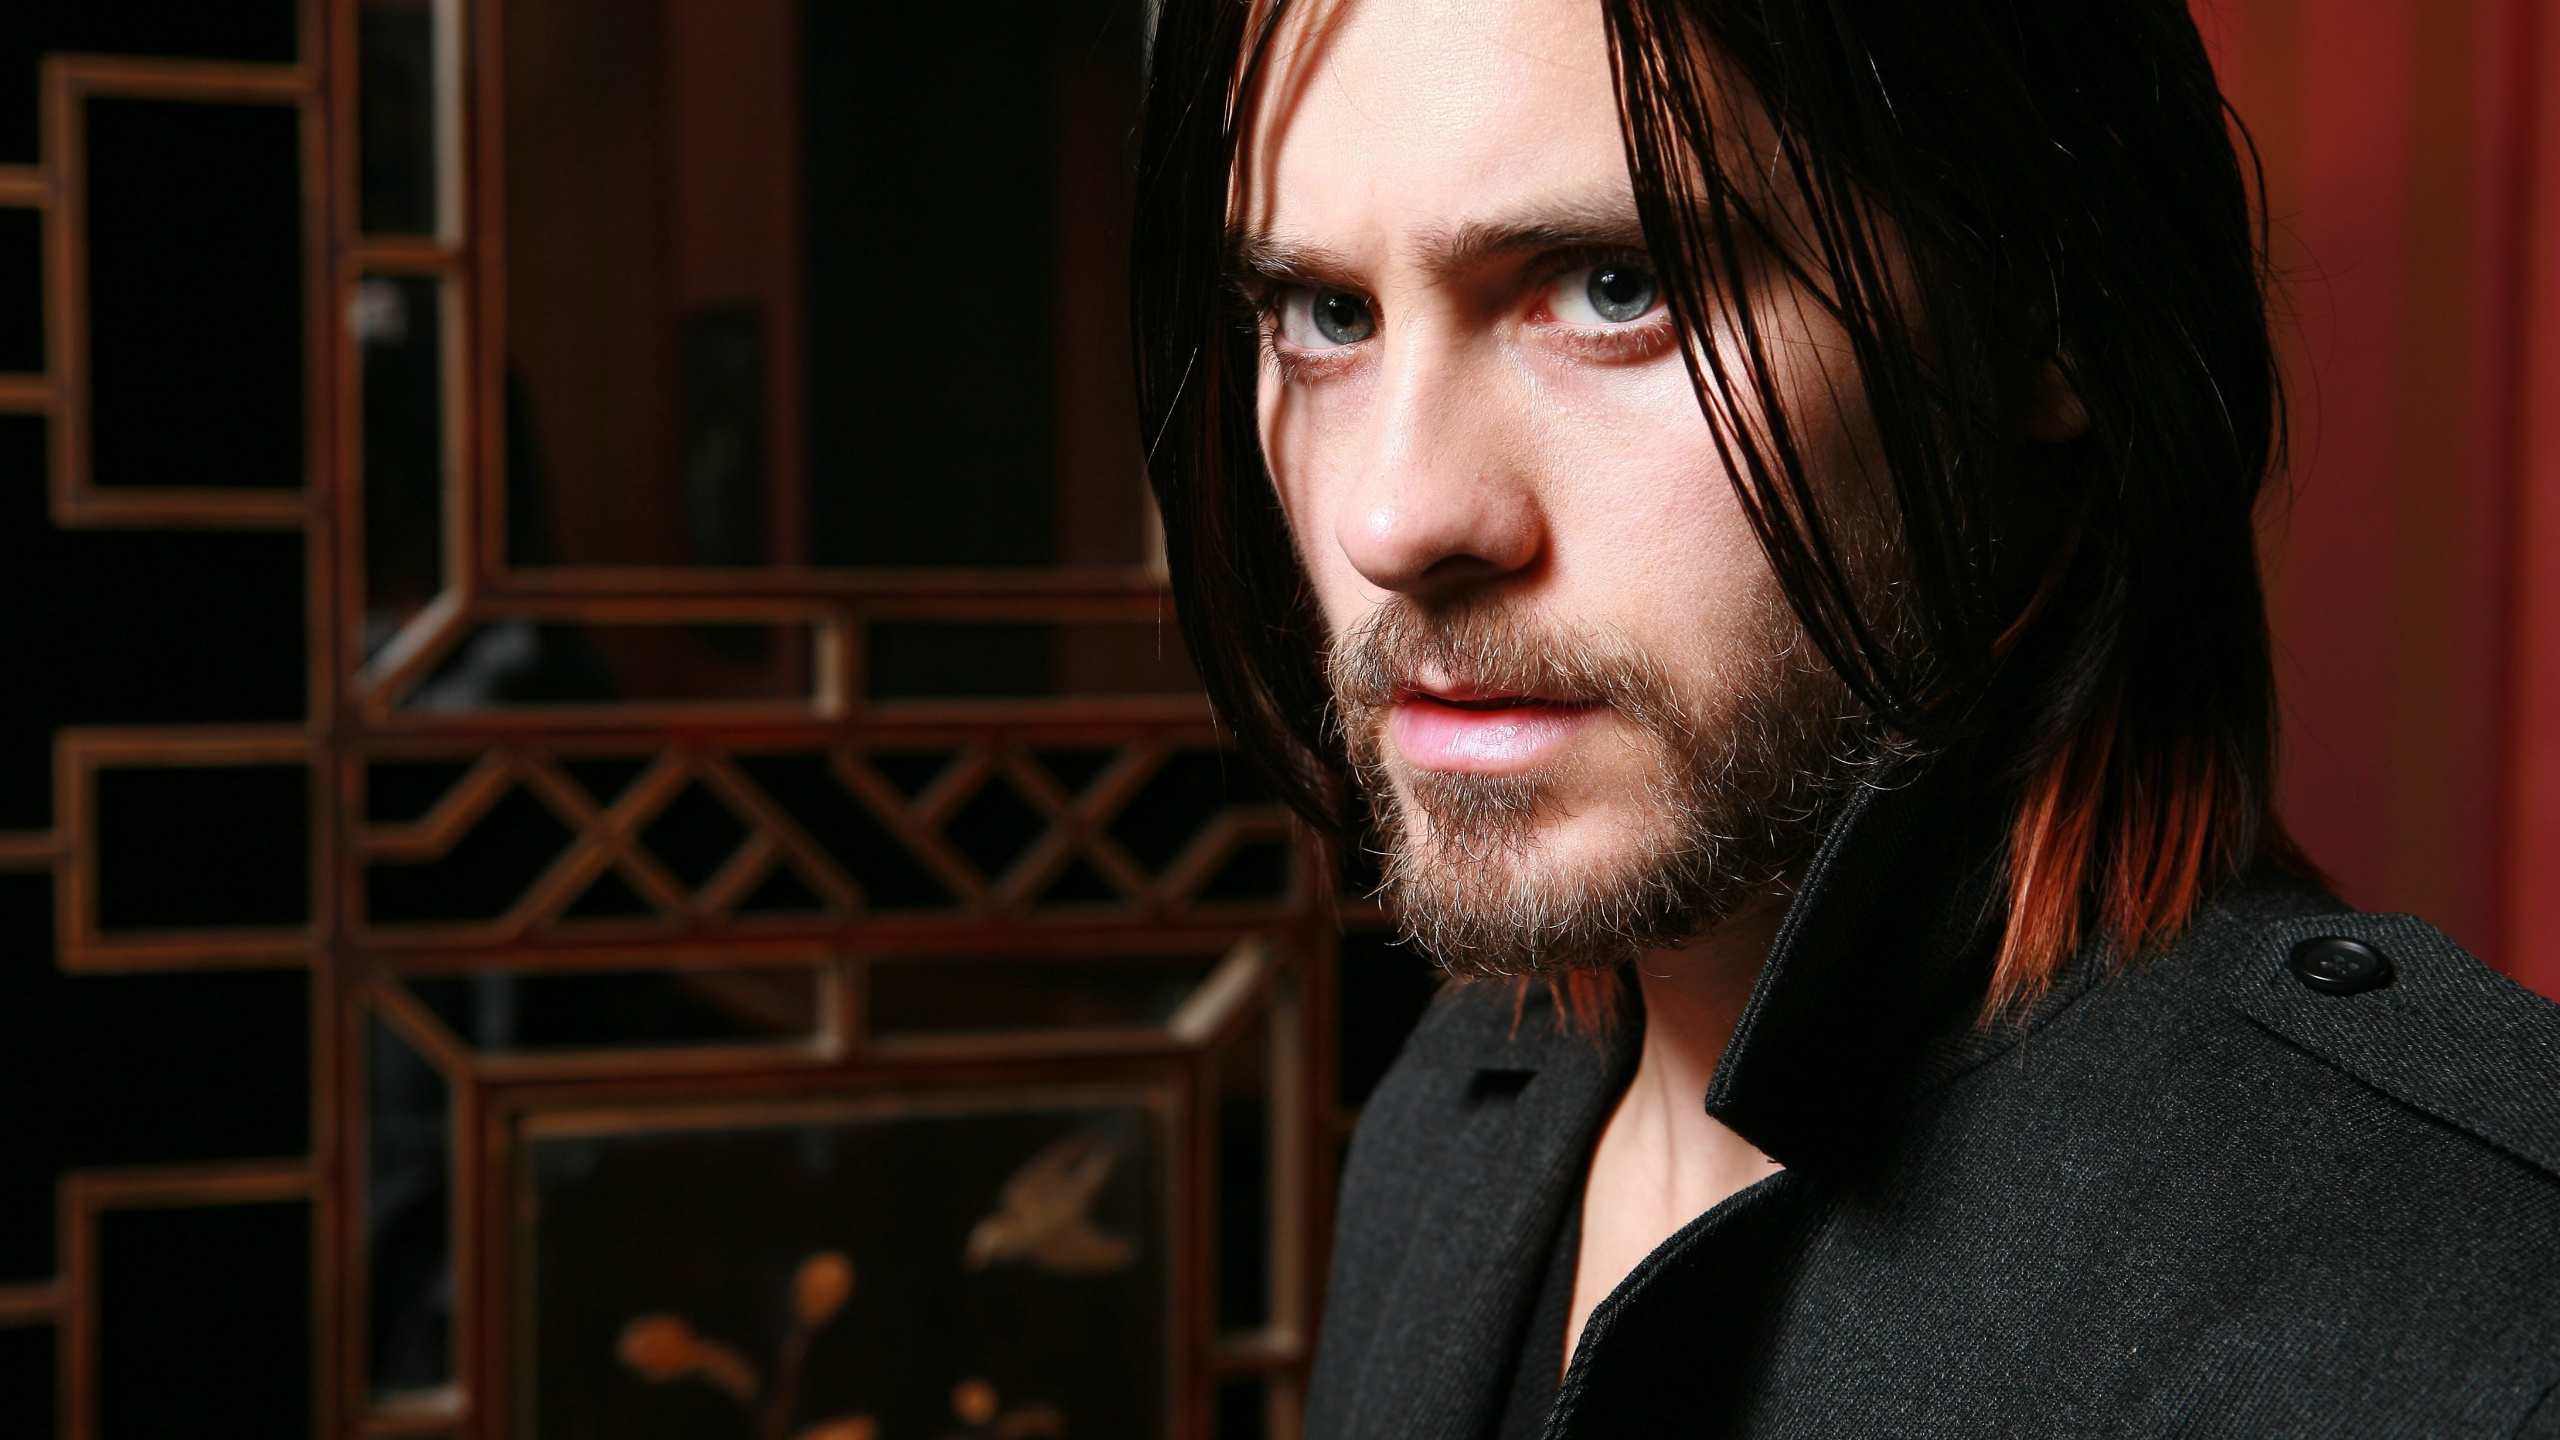 Pictures Of Jared Leto